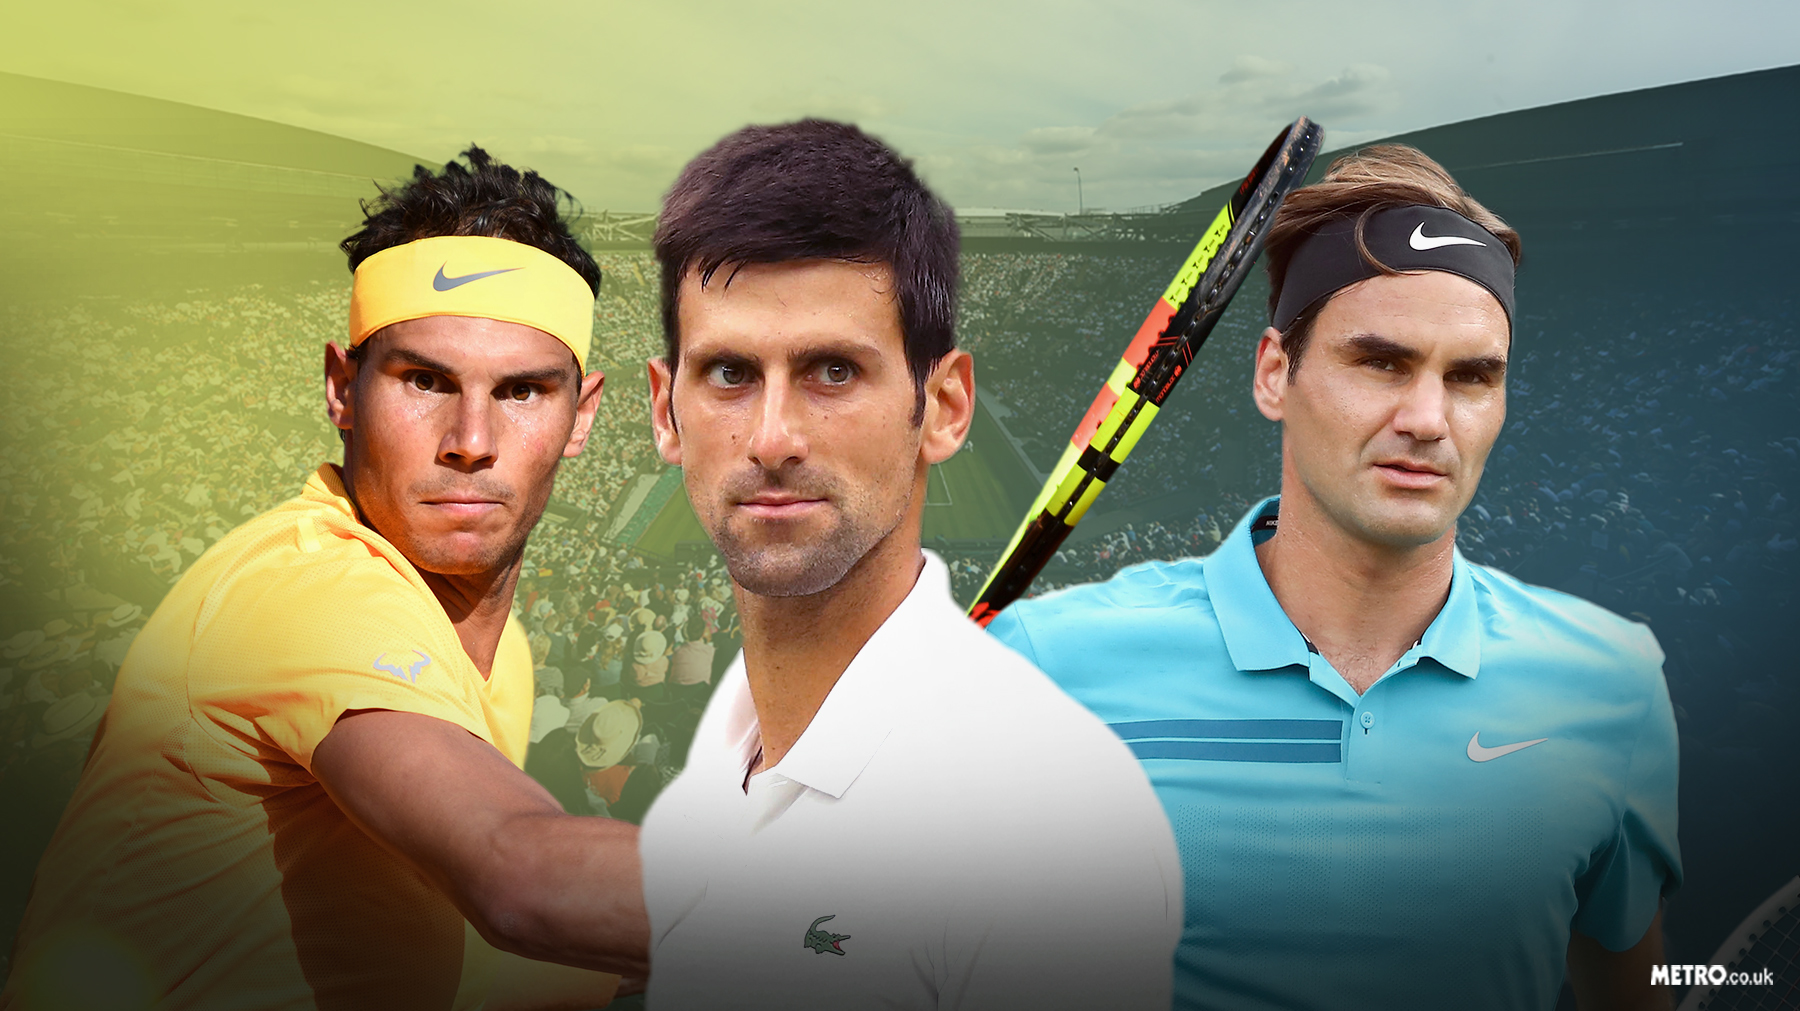 Who will Rafael Nadal, Novak Djokovic and Roger Federer have to beat to win the French Open?